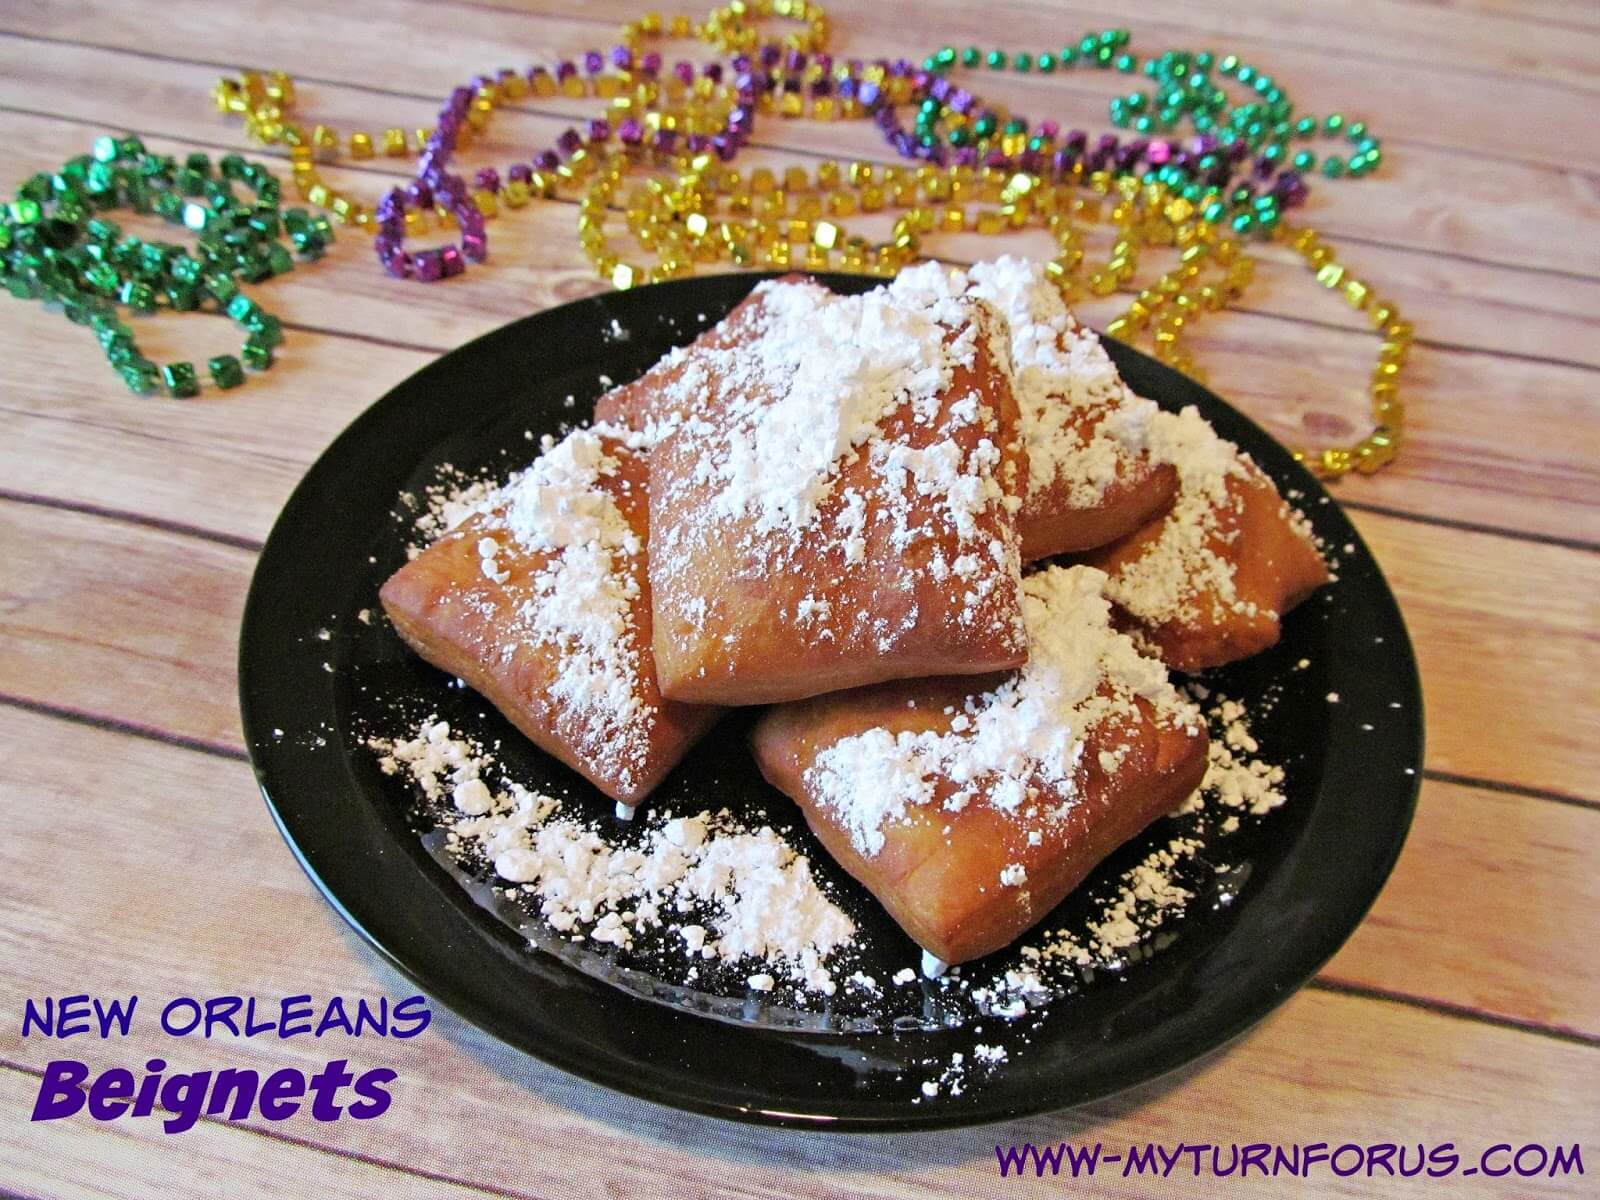 New Orleans Beignets from My Turn For Us